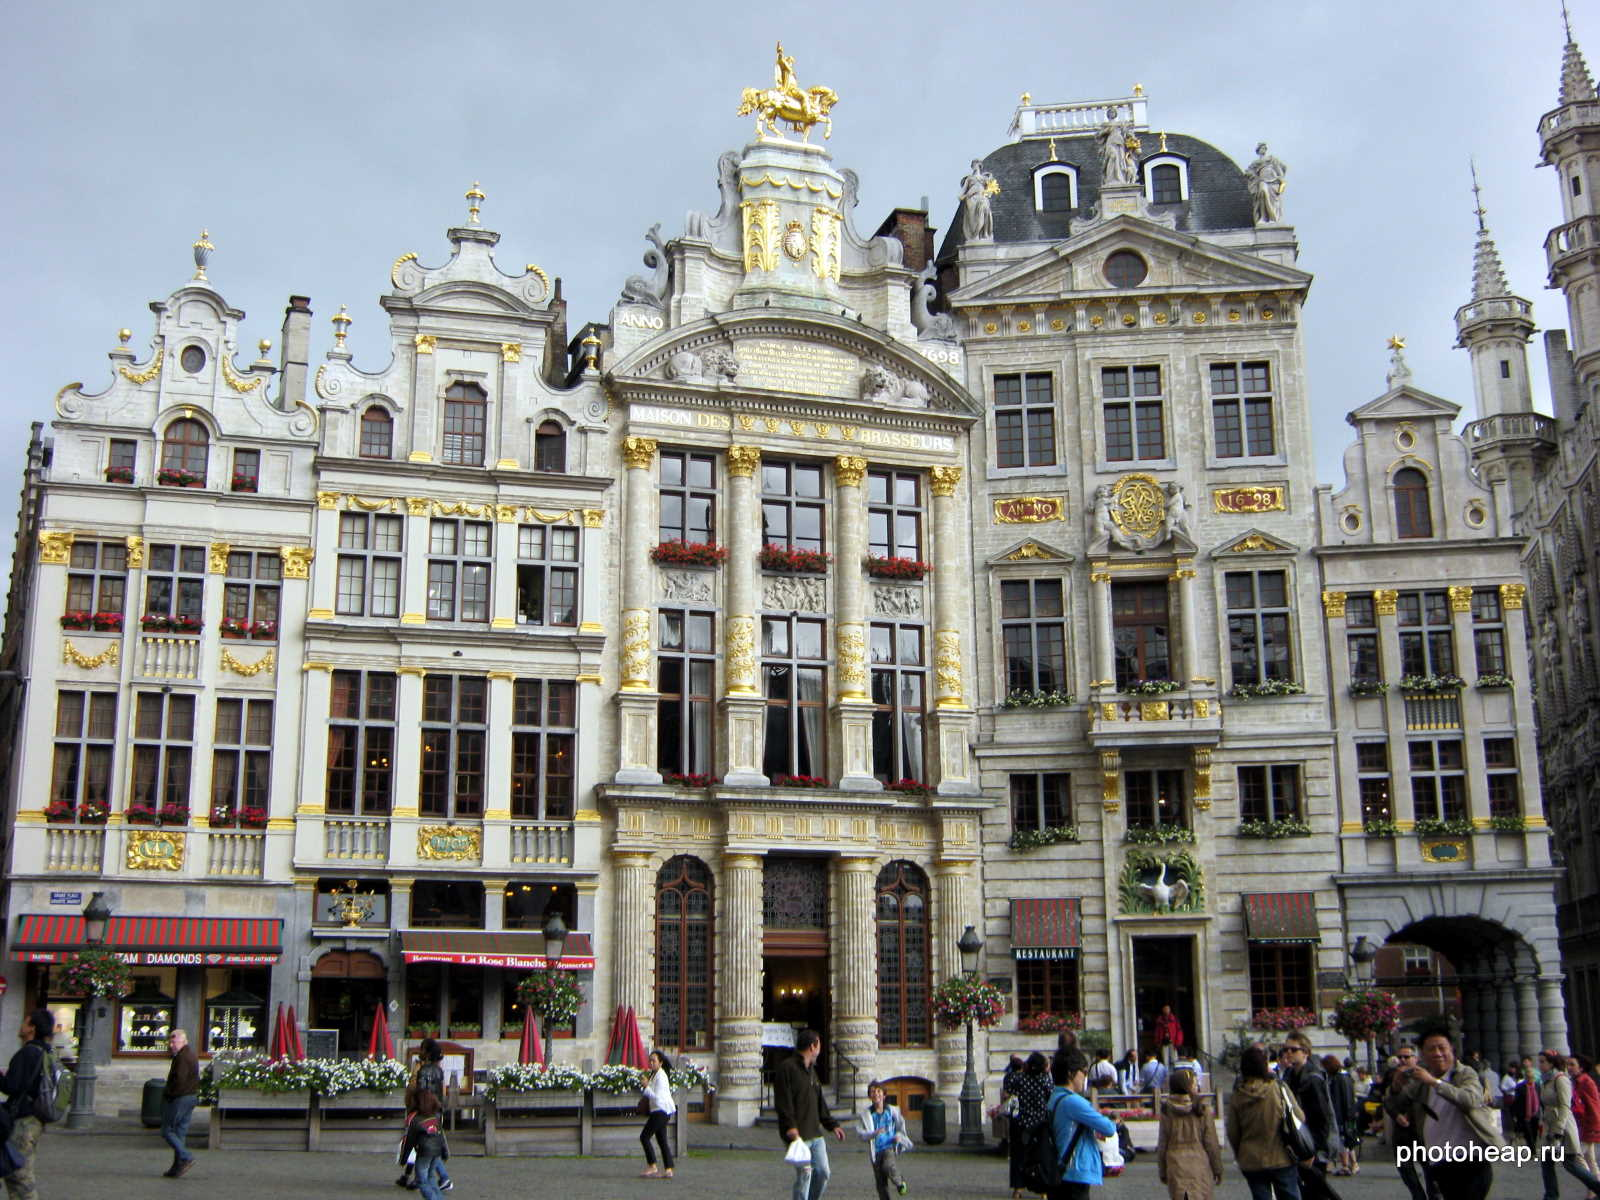 Brussels - Central square